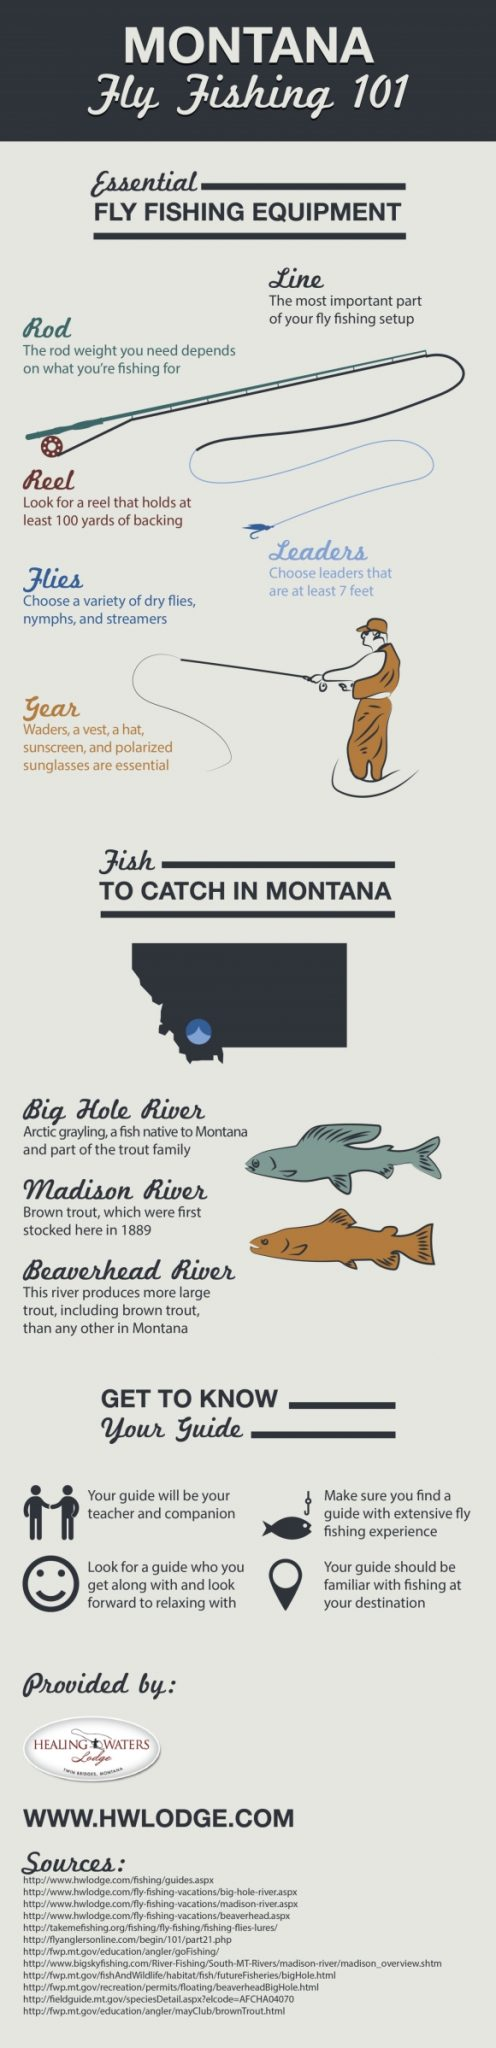 Montana-Fly-Fishing-101-Infographic[1]